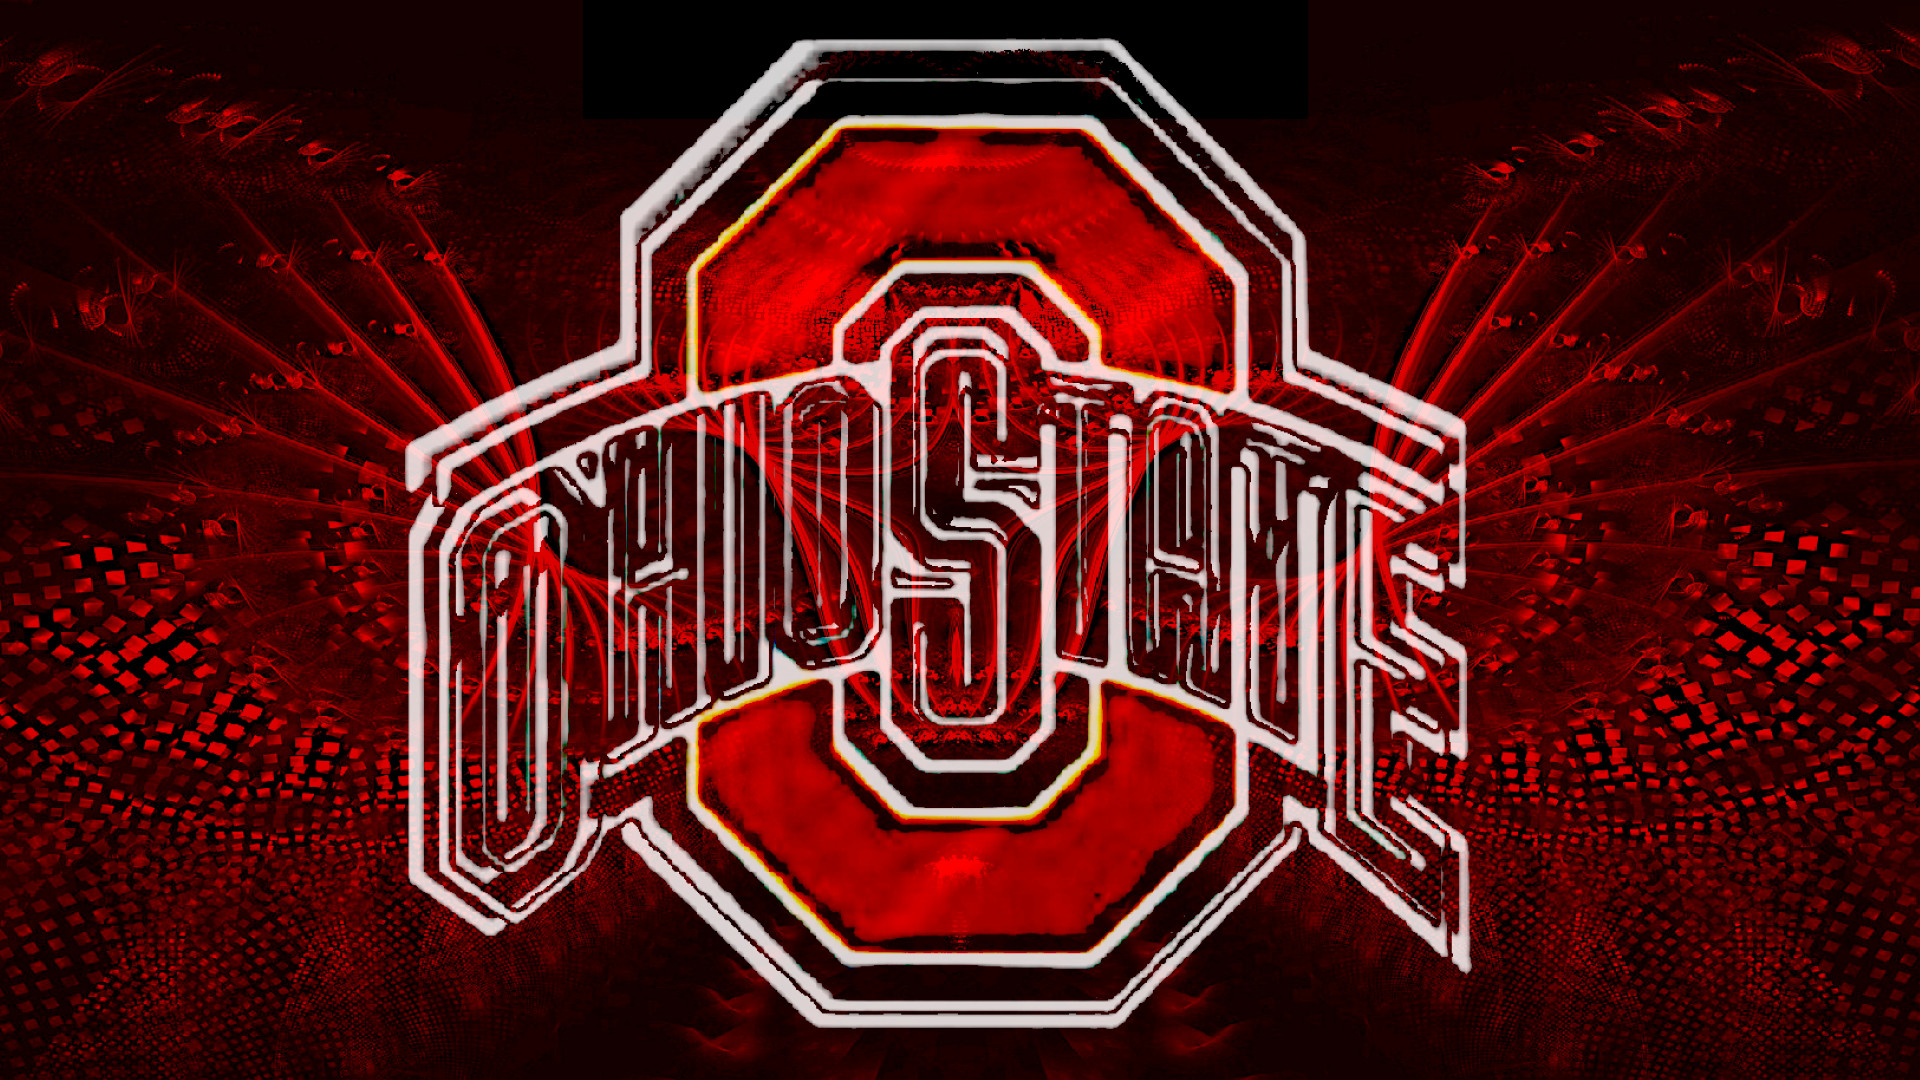 best images about OHIO STATE ipad Wallpapers on Pinterest | HD Wallpapers |  Pinterest | Hd wallpaper and Wallpaper